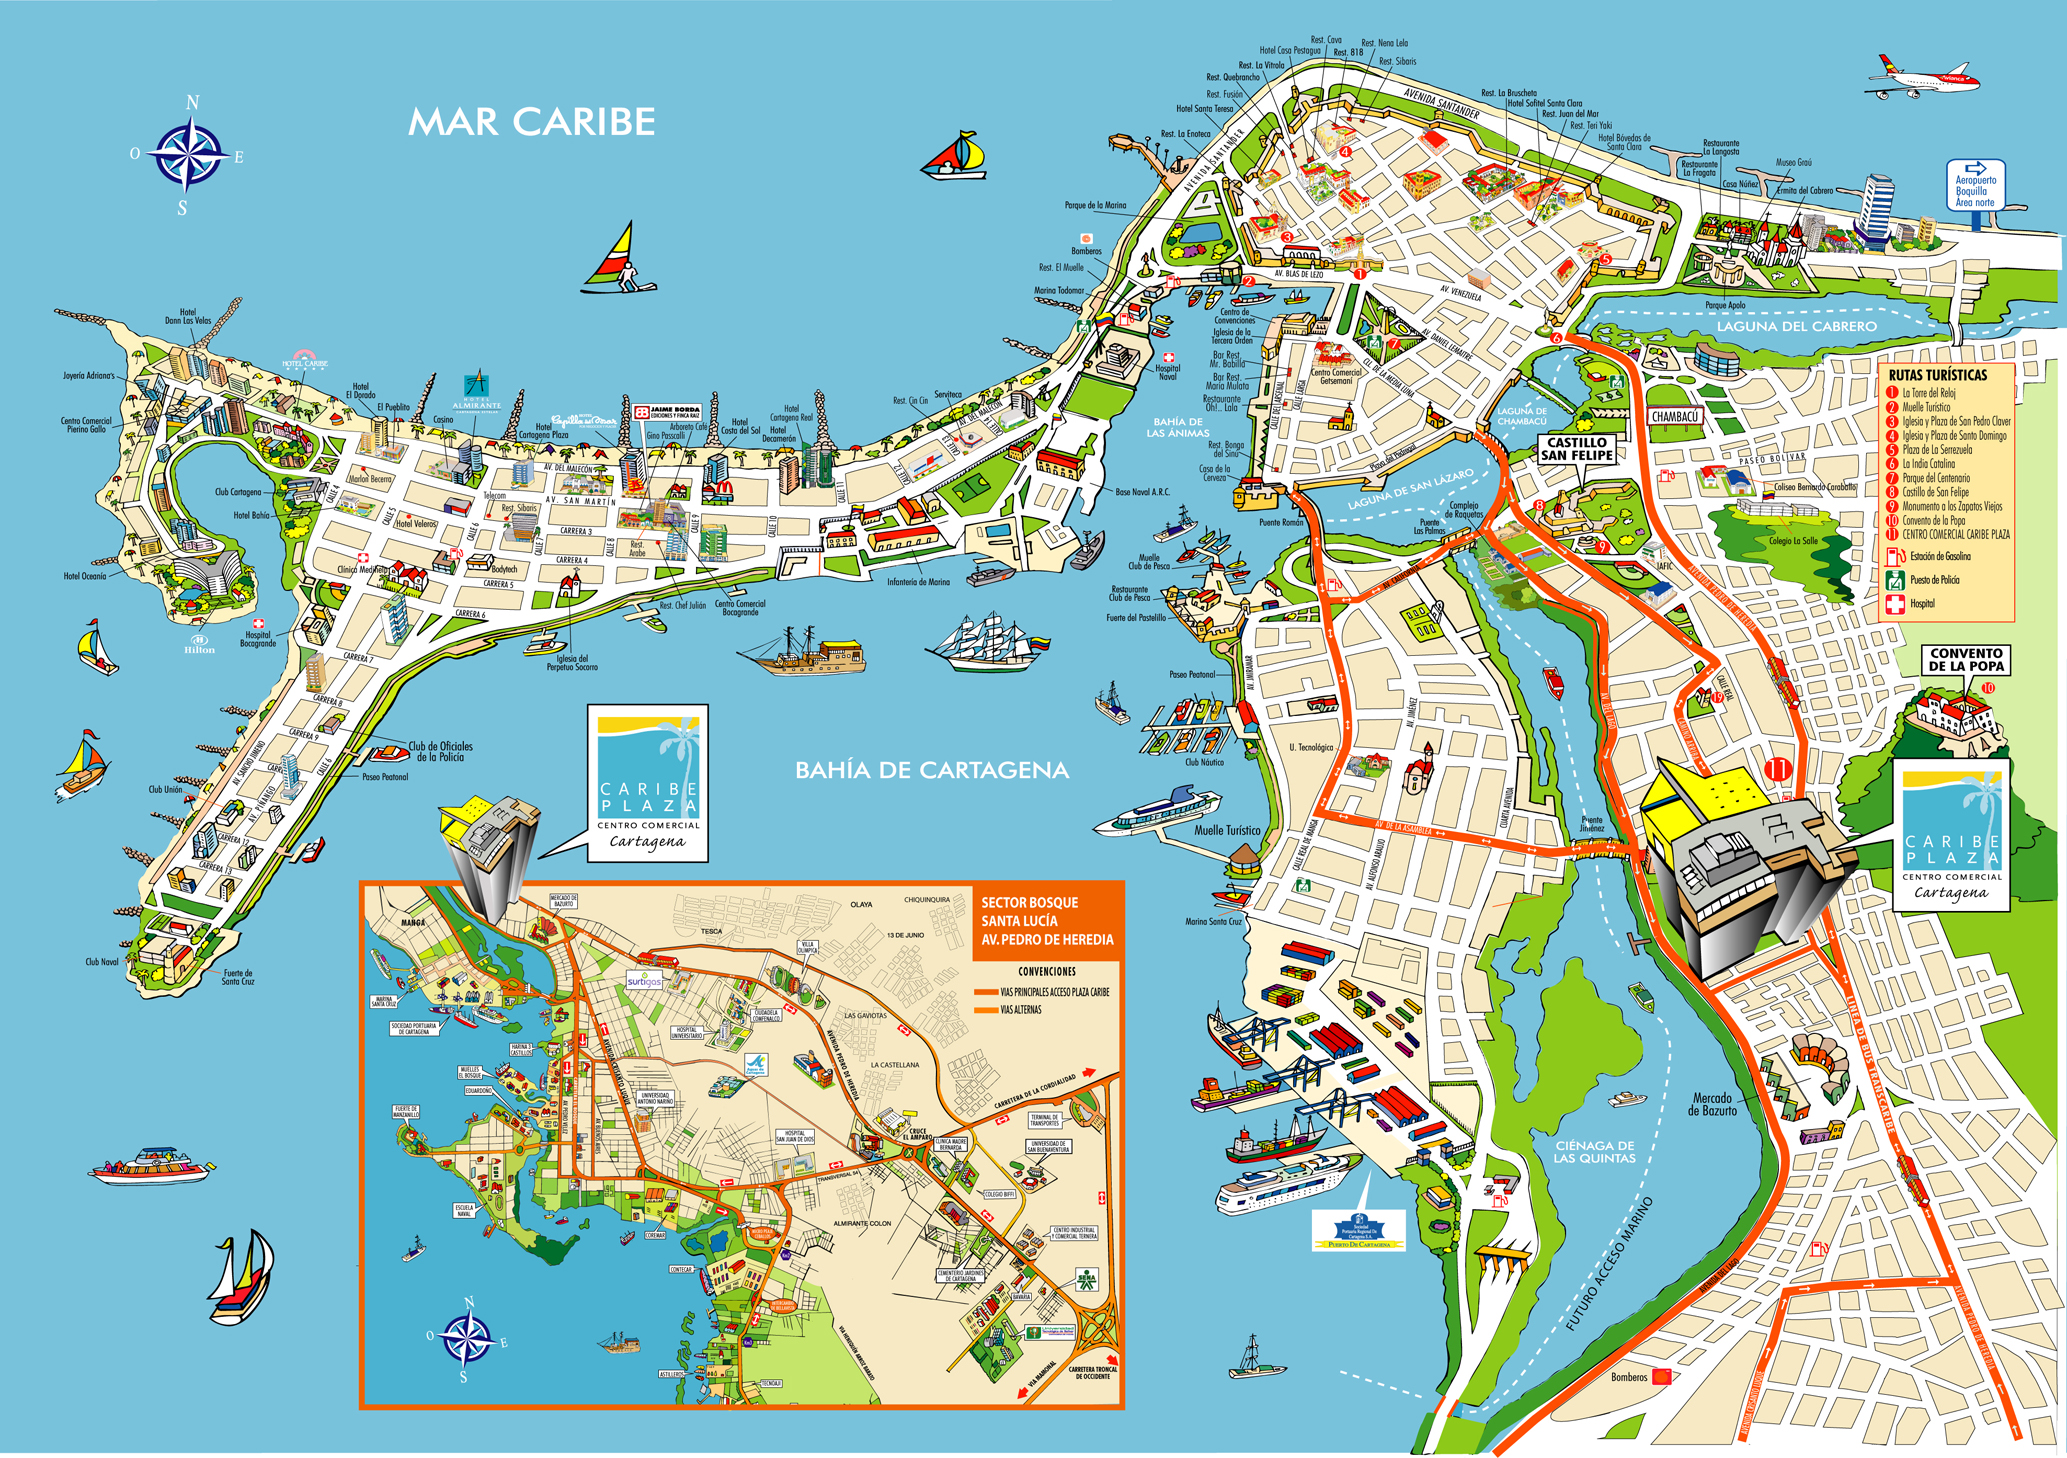 Cartagena - OldTown is the hump up top, surrounded by the yellow wall; Bocagrande is the peninsula that sticks out to the west, north/west of Bahia de Cartagena